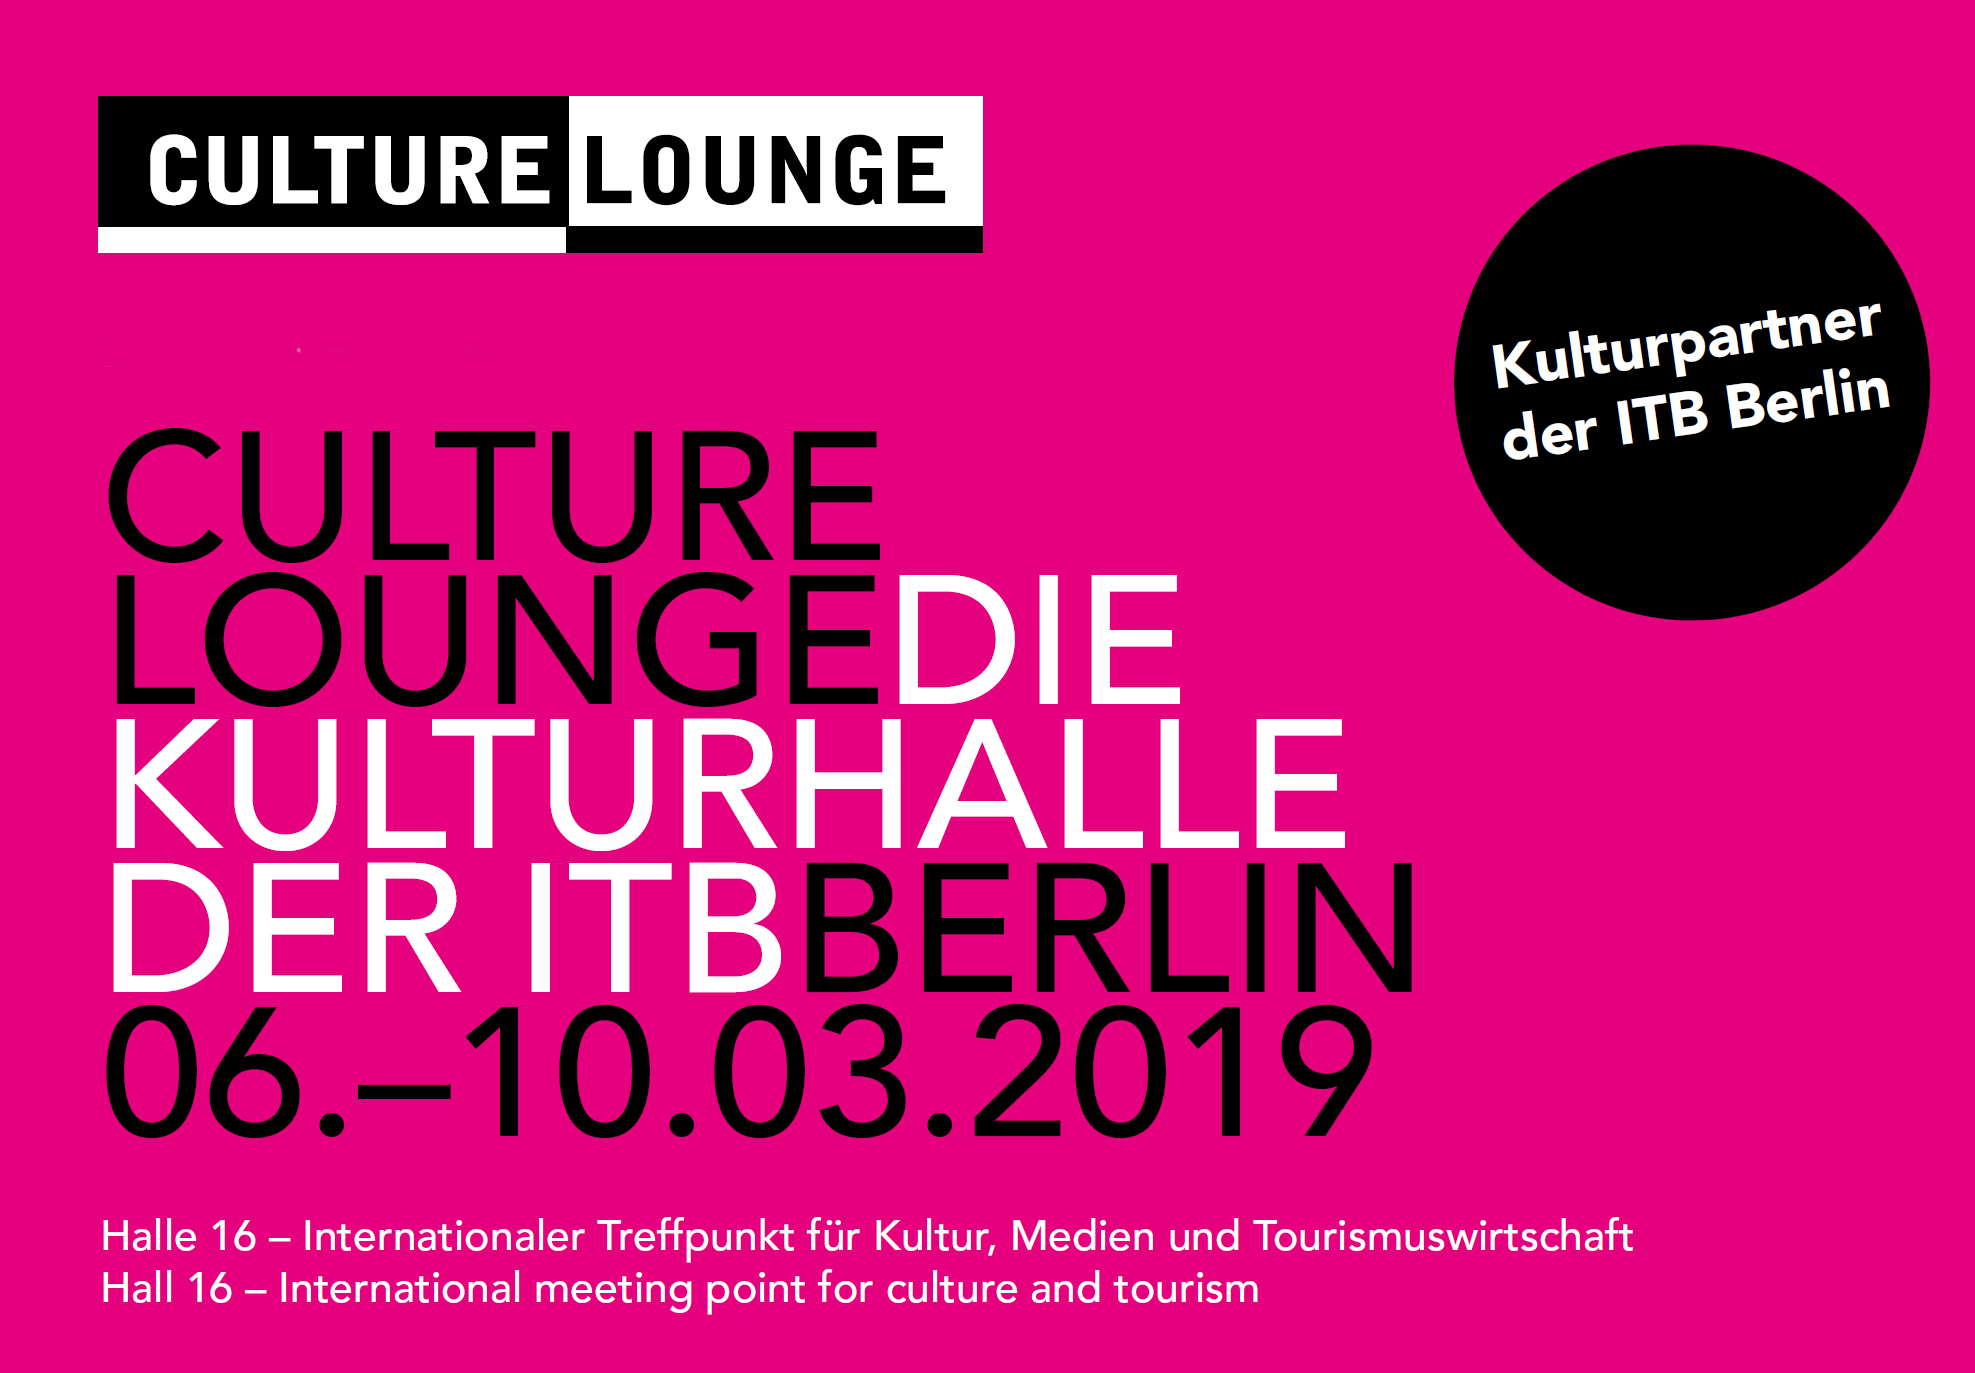 Culture Lounge auf der ITB Berlin in Halle 16